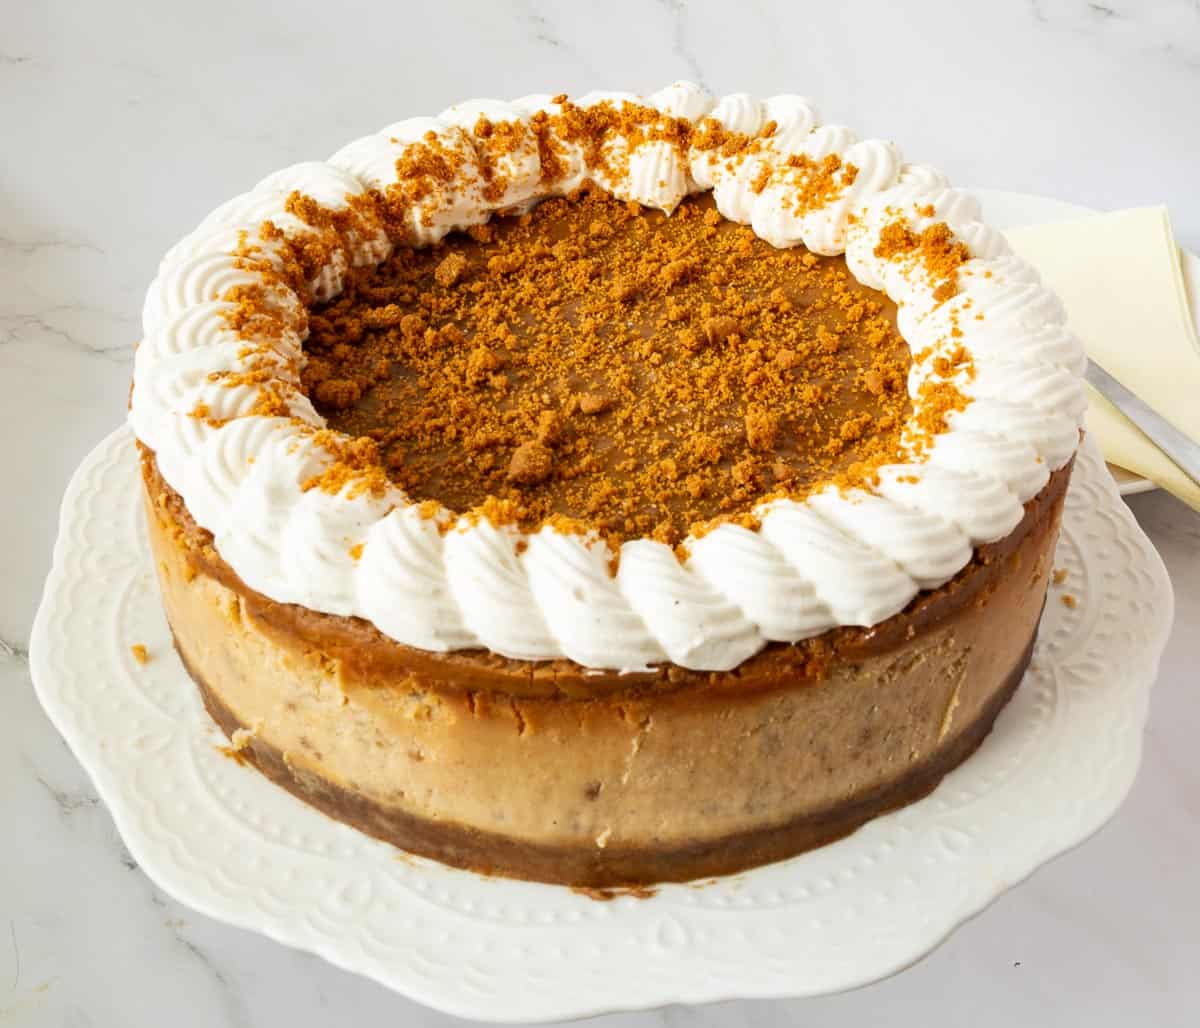 A full baked cheesecake with biscoff glaze on a cake stand.